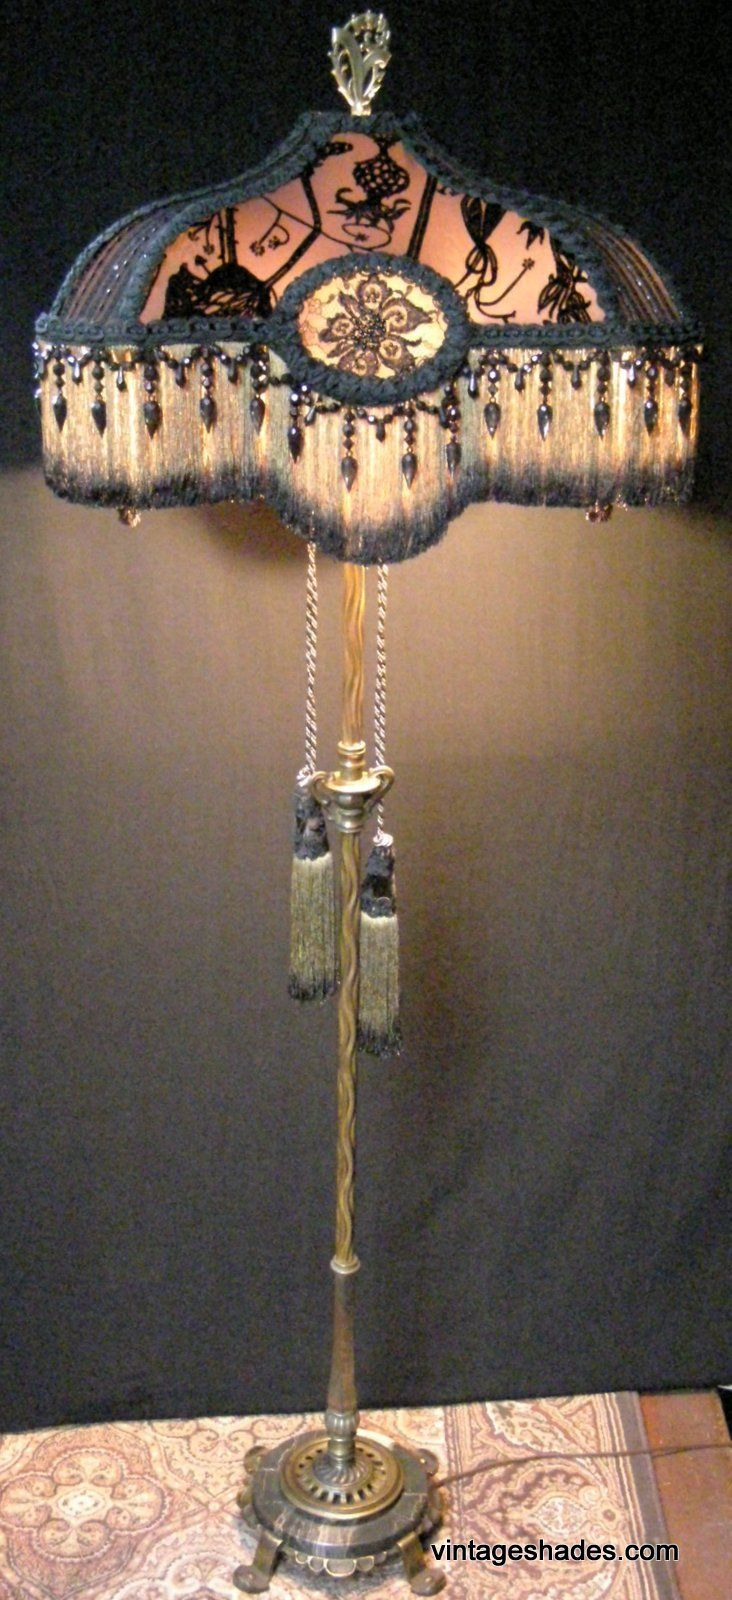 Antique floor lamp with table - This Lamp Is An Amazing Antique Rembrandt Floor Lamp Made In The U S A In